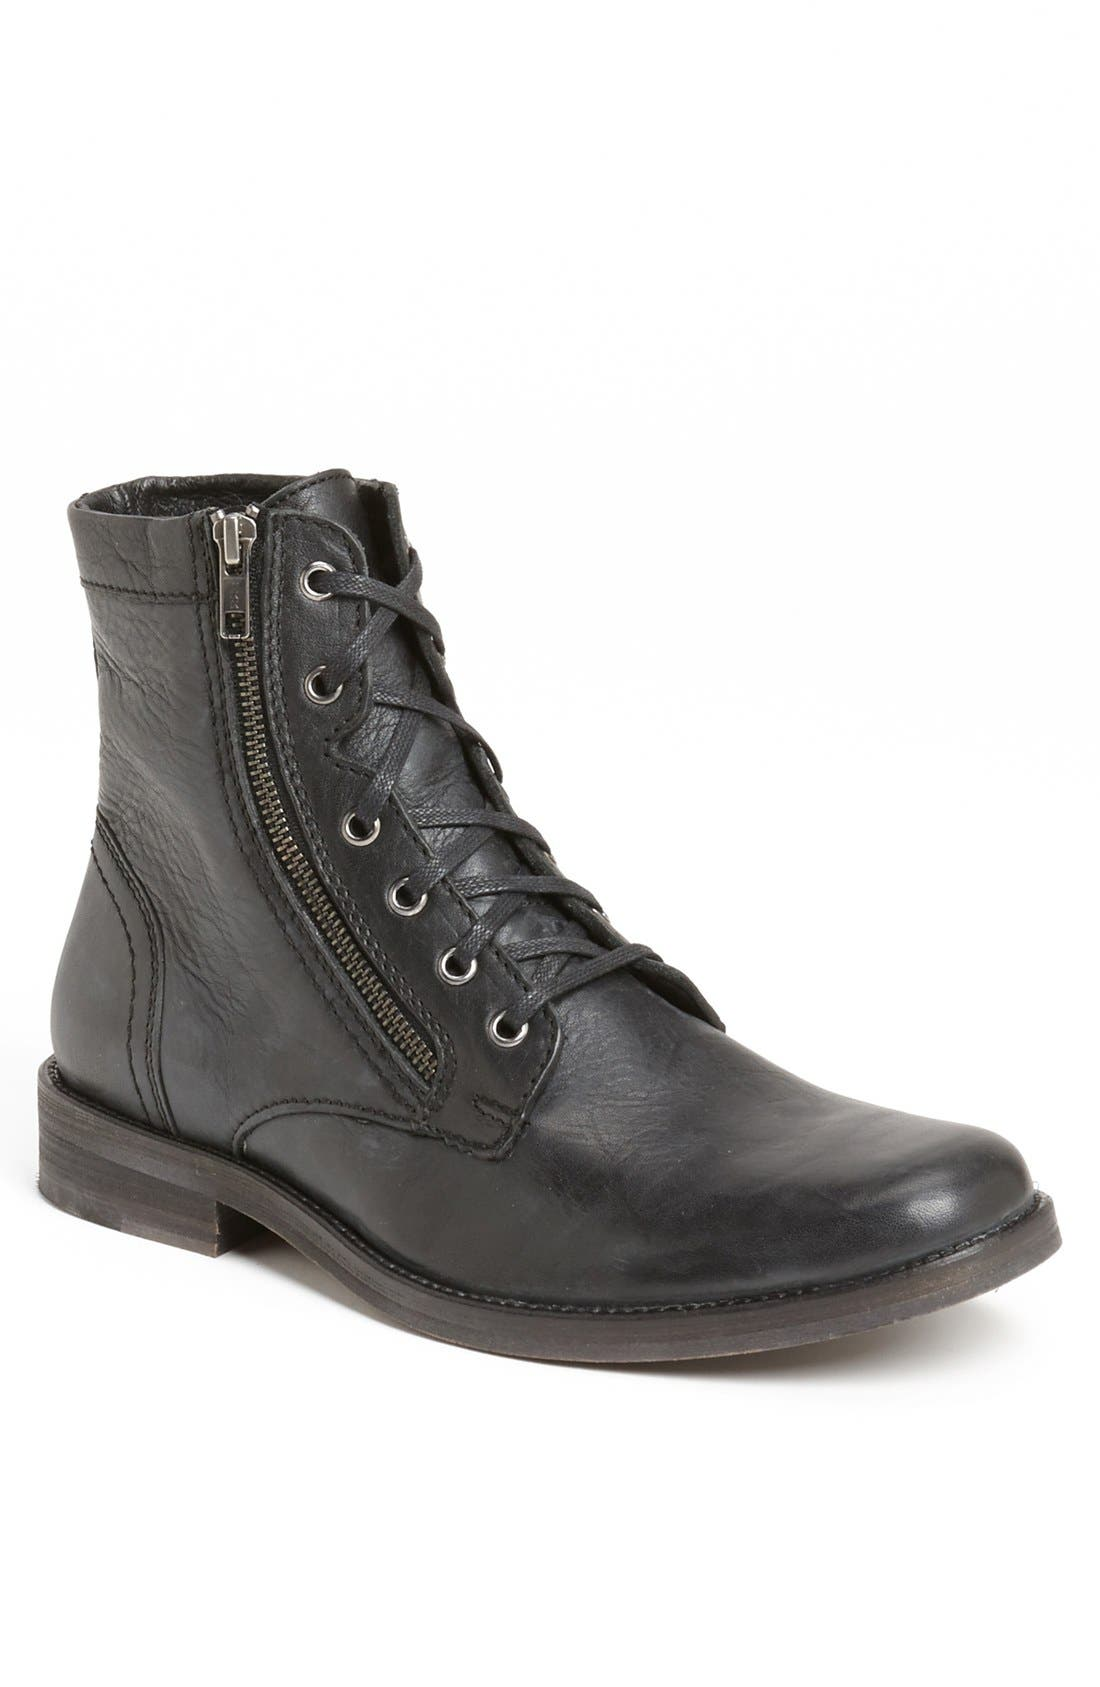 Main Image - The Rail 'Merida' Plain Toe Boot